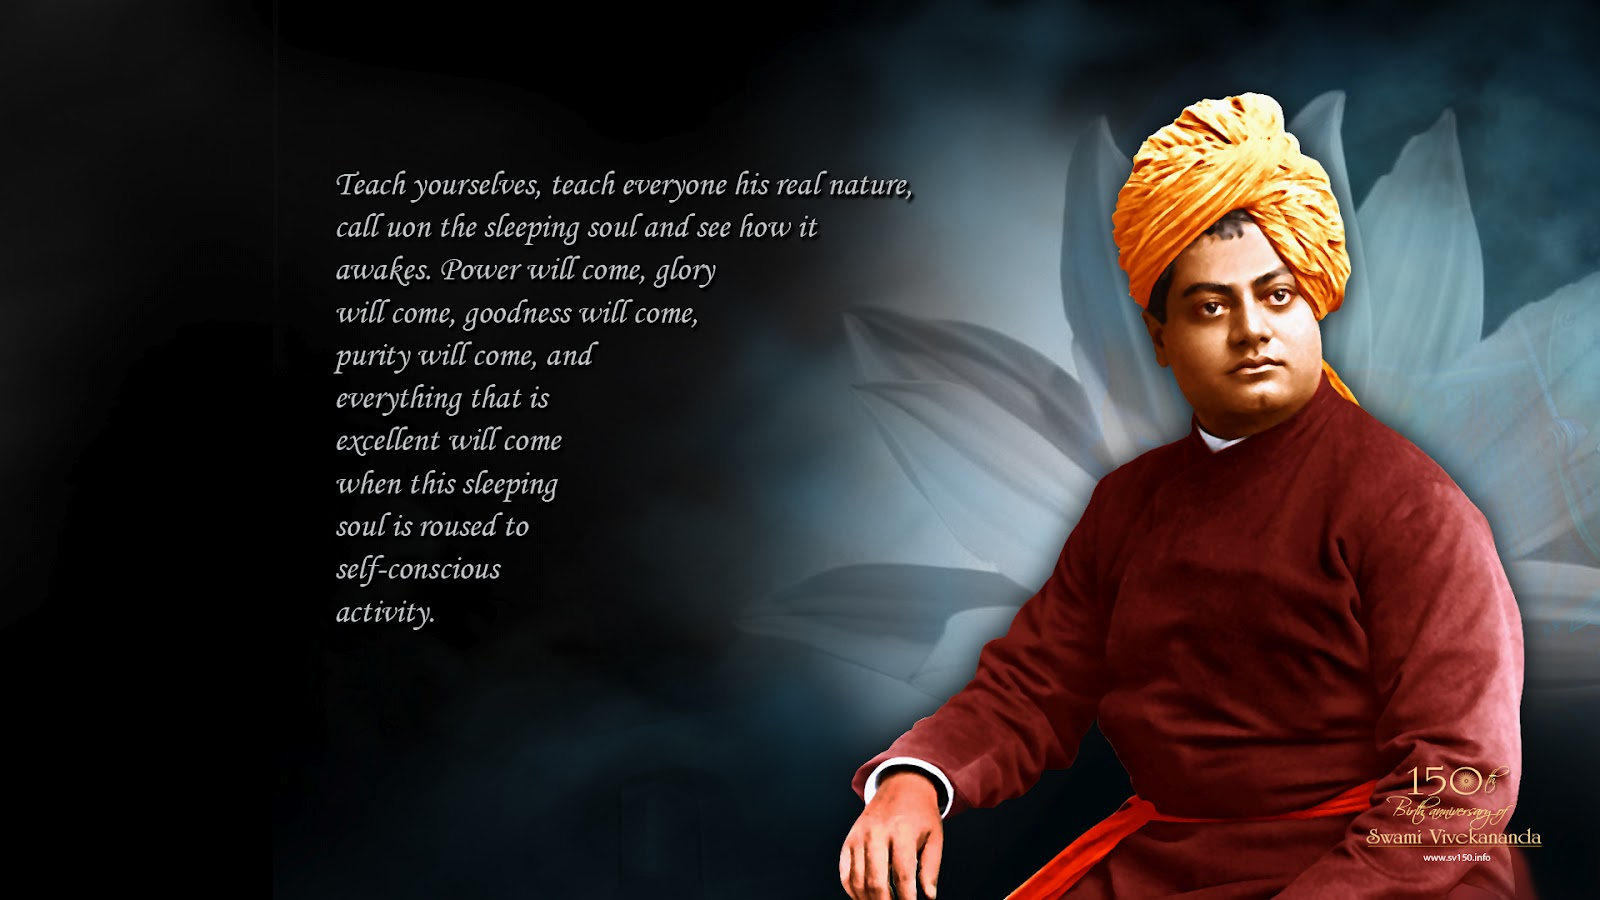 Knowledge Quotes Wallpapers 4k Swami Vivekananda Inspire Wallpapers Download